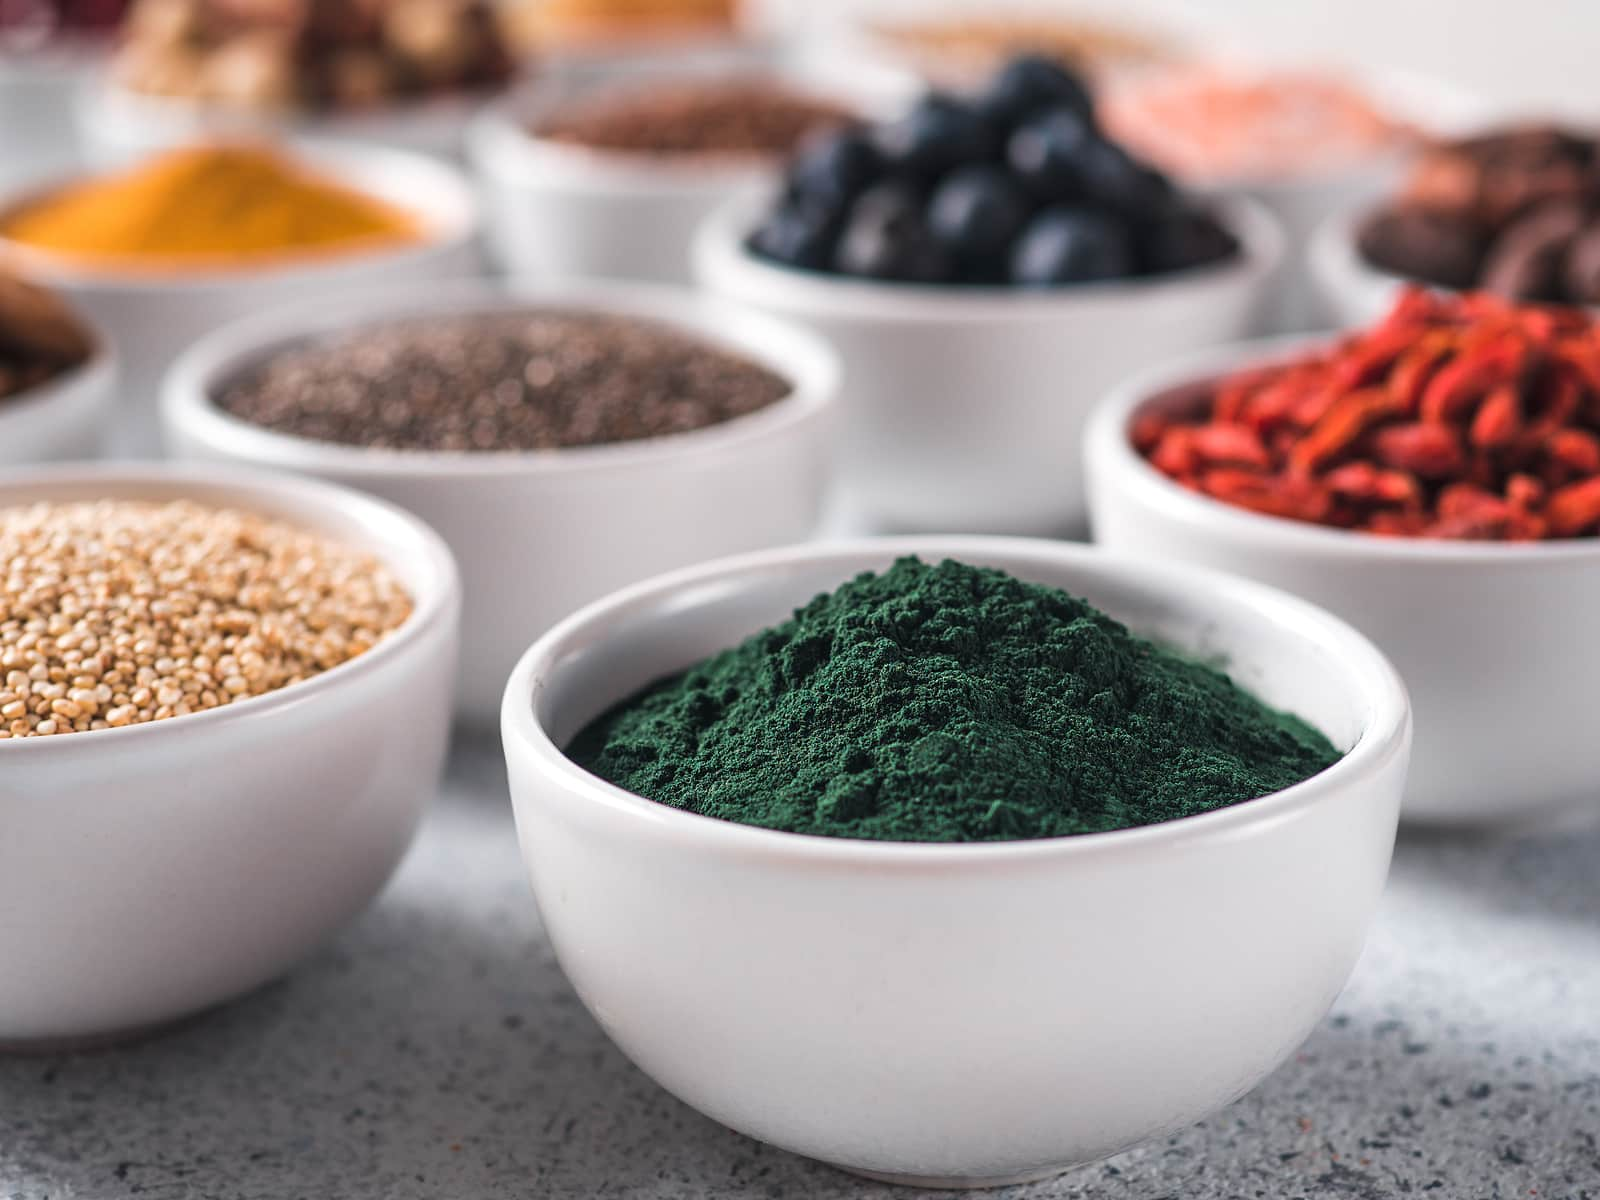 Spirulina powder - Top 7 Superfoods to Add to your Smoothie